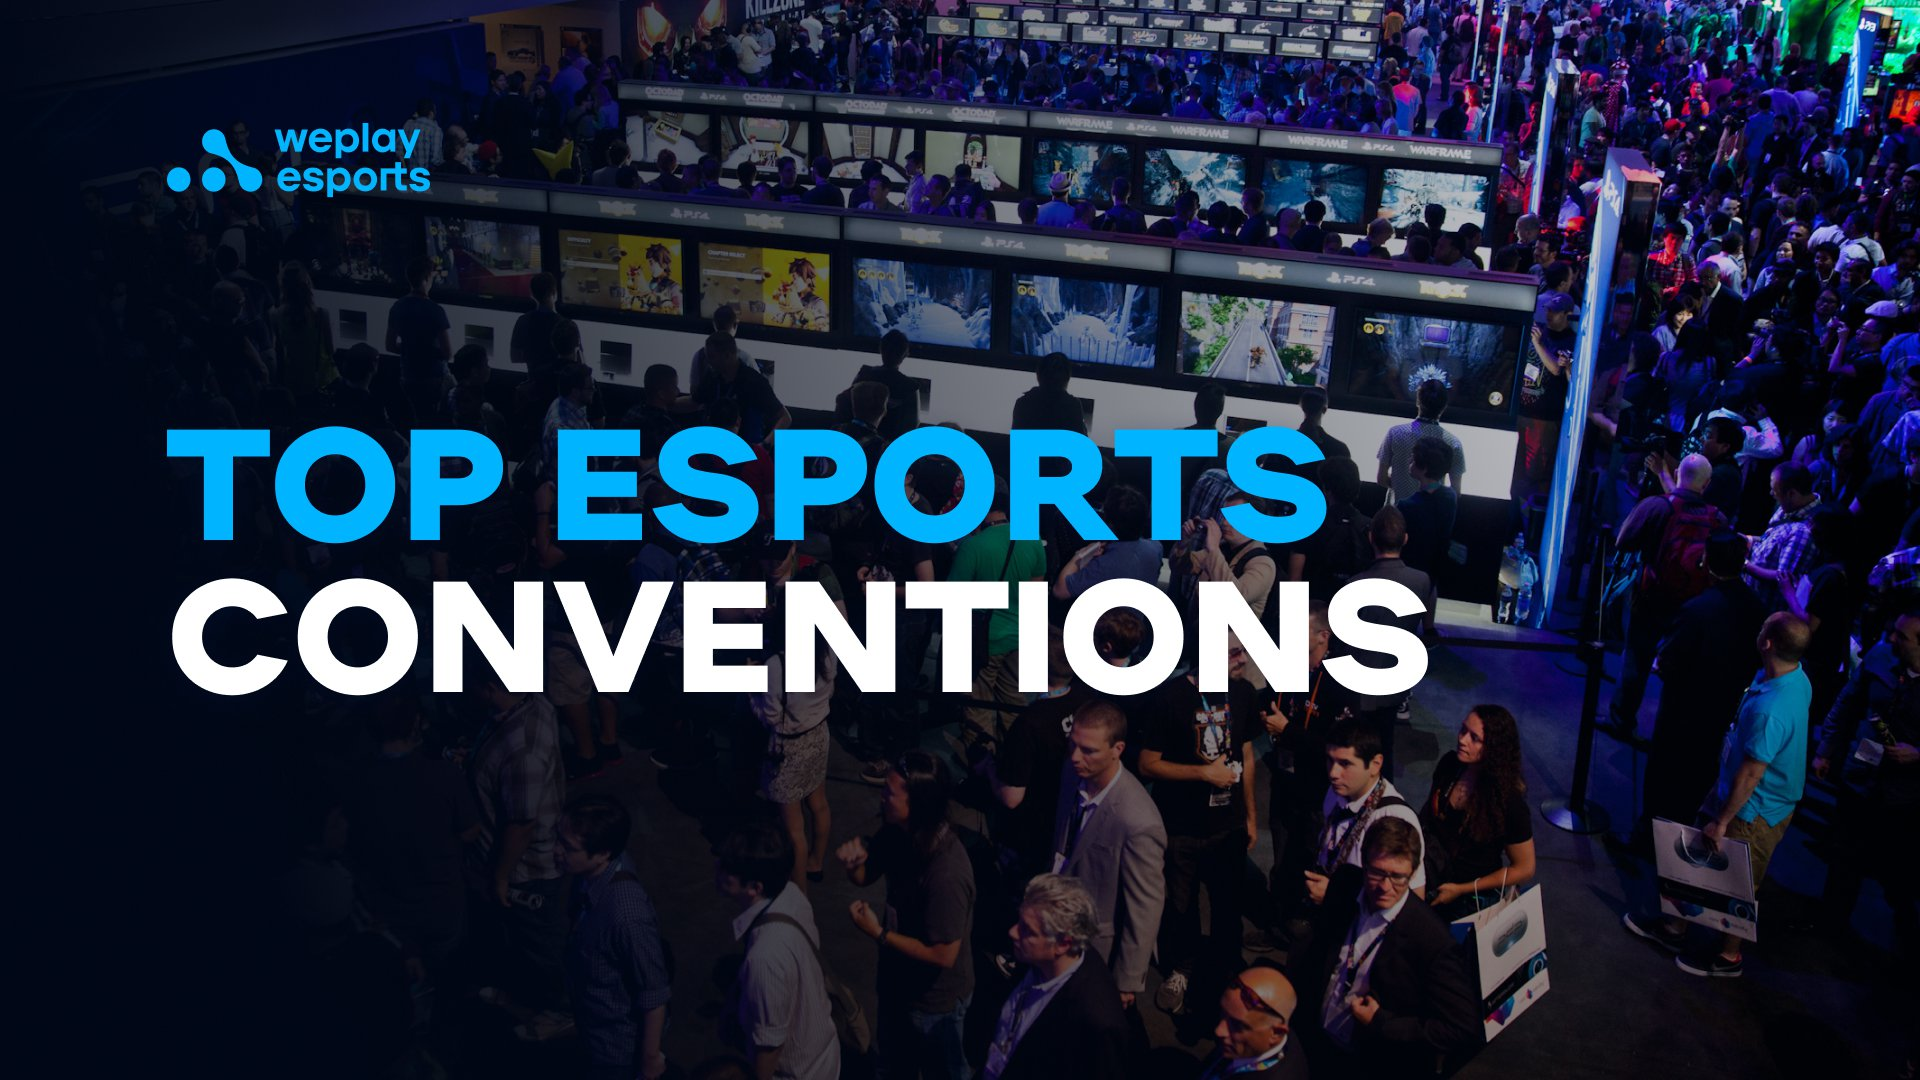 Top Esports Conventions